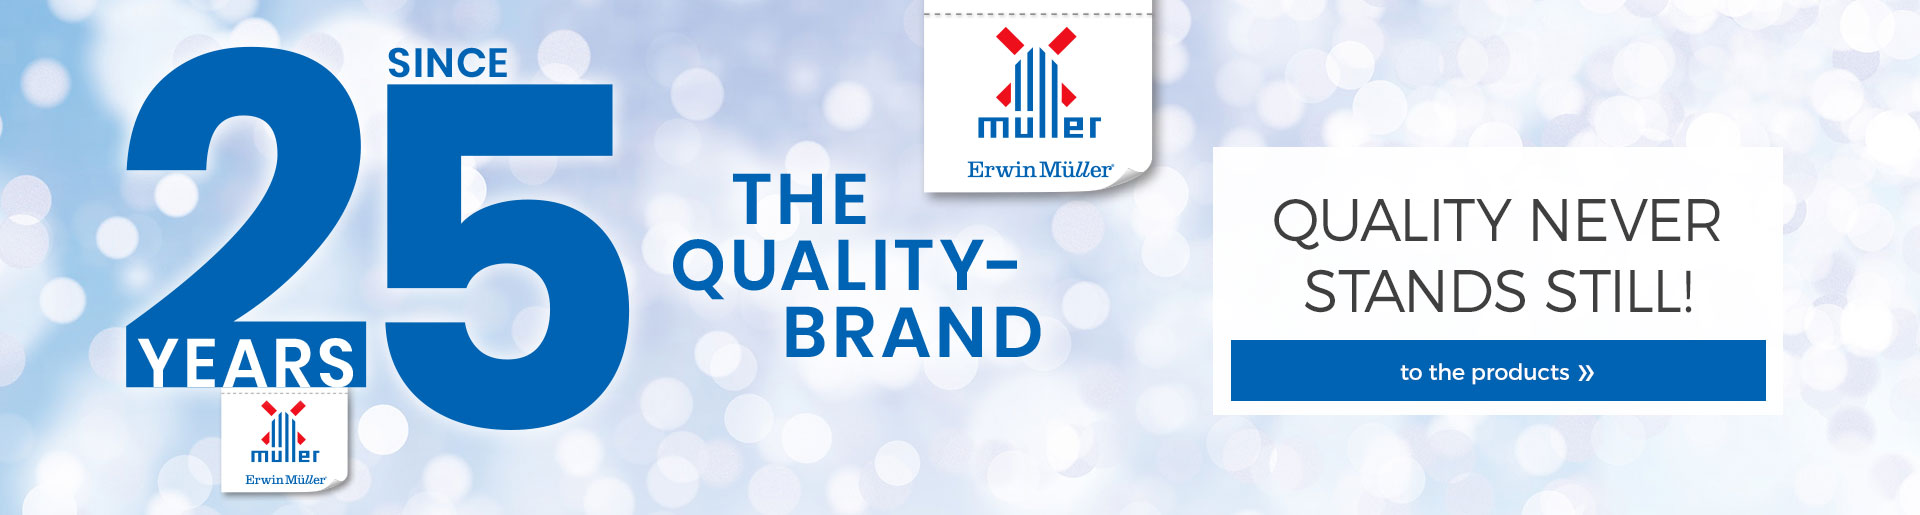 25 years of the quality brand erwin müller - to the products!